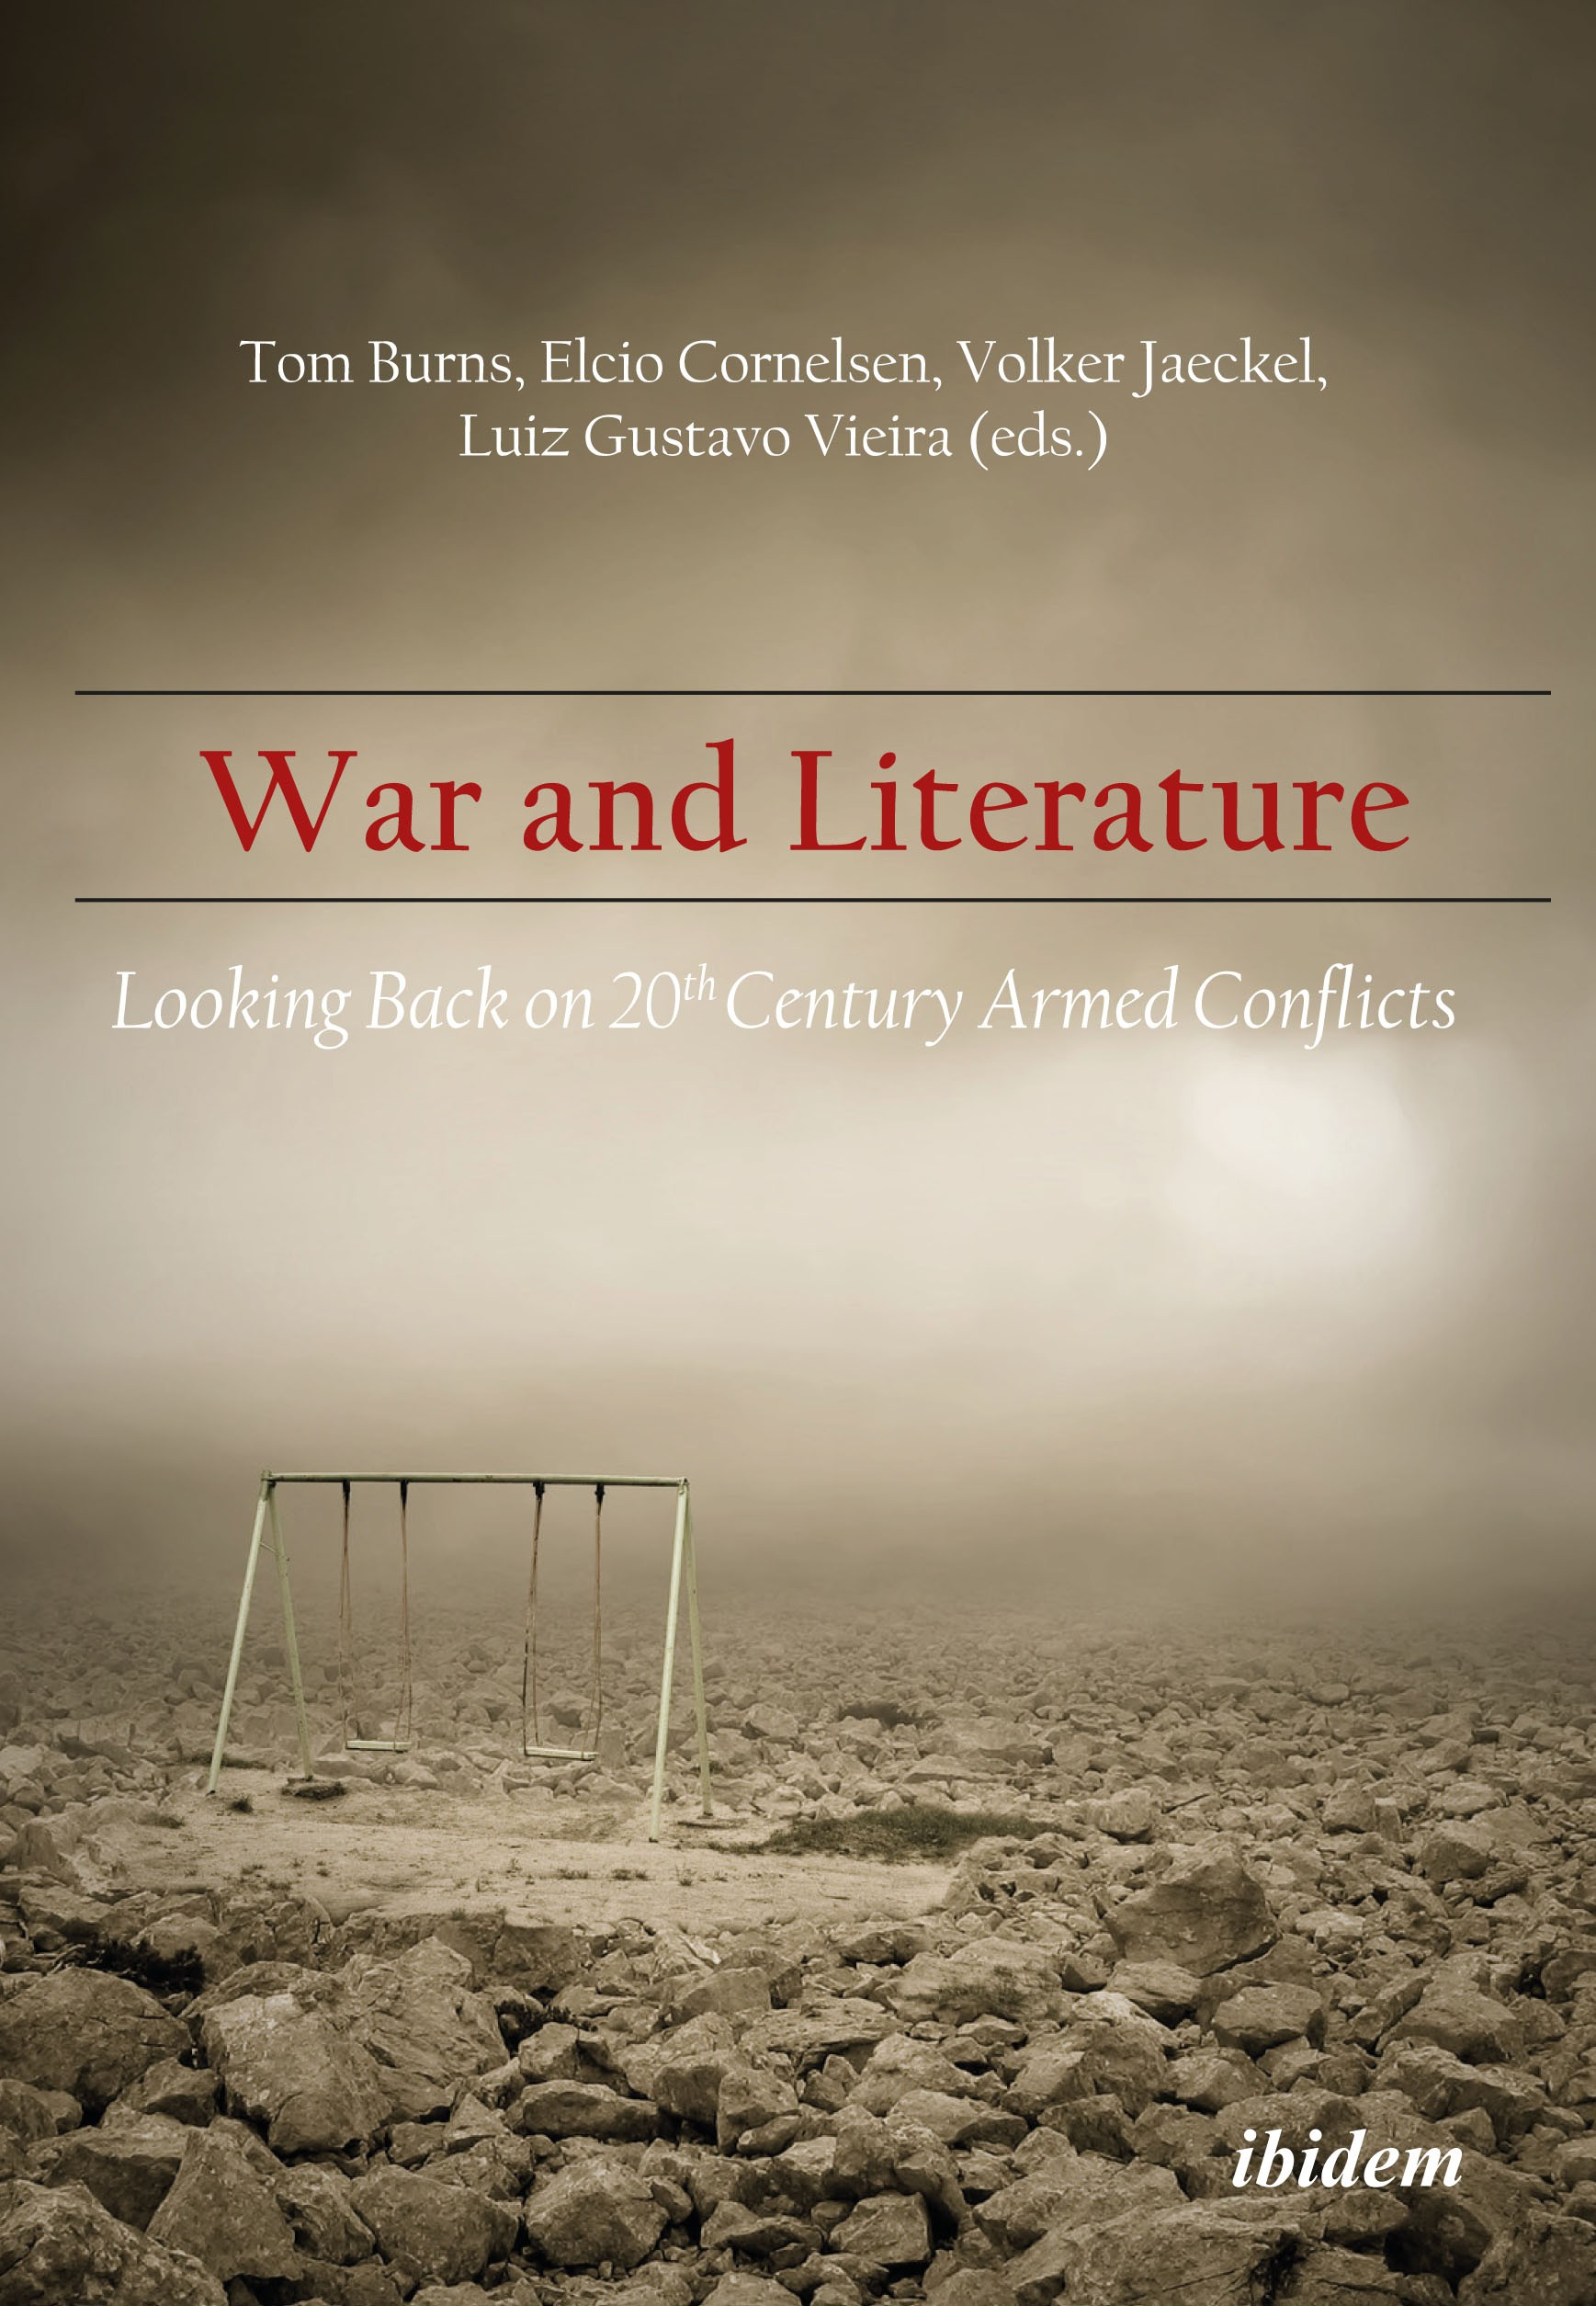 War and Literature: Looking Back on 20th Century Armed Conflicts